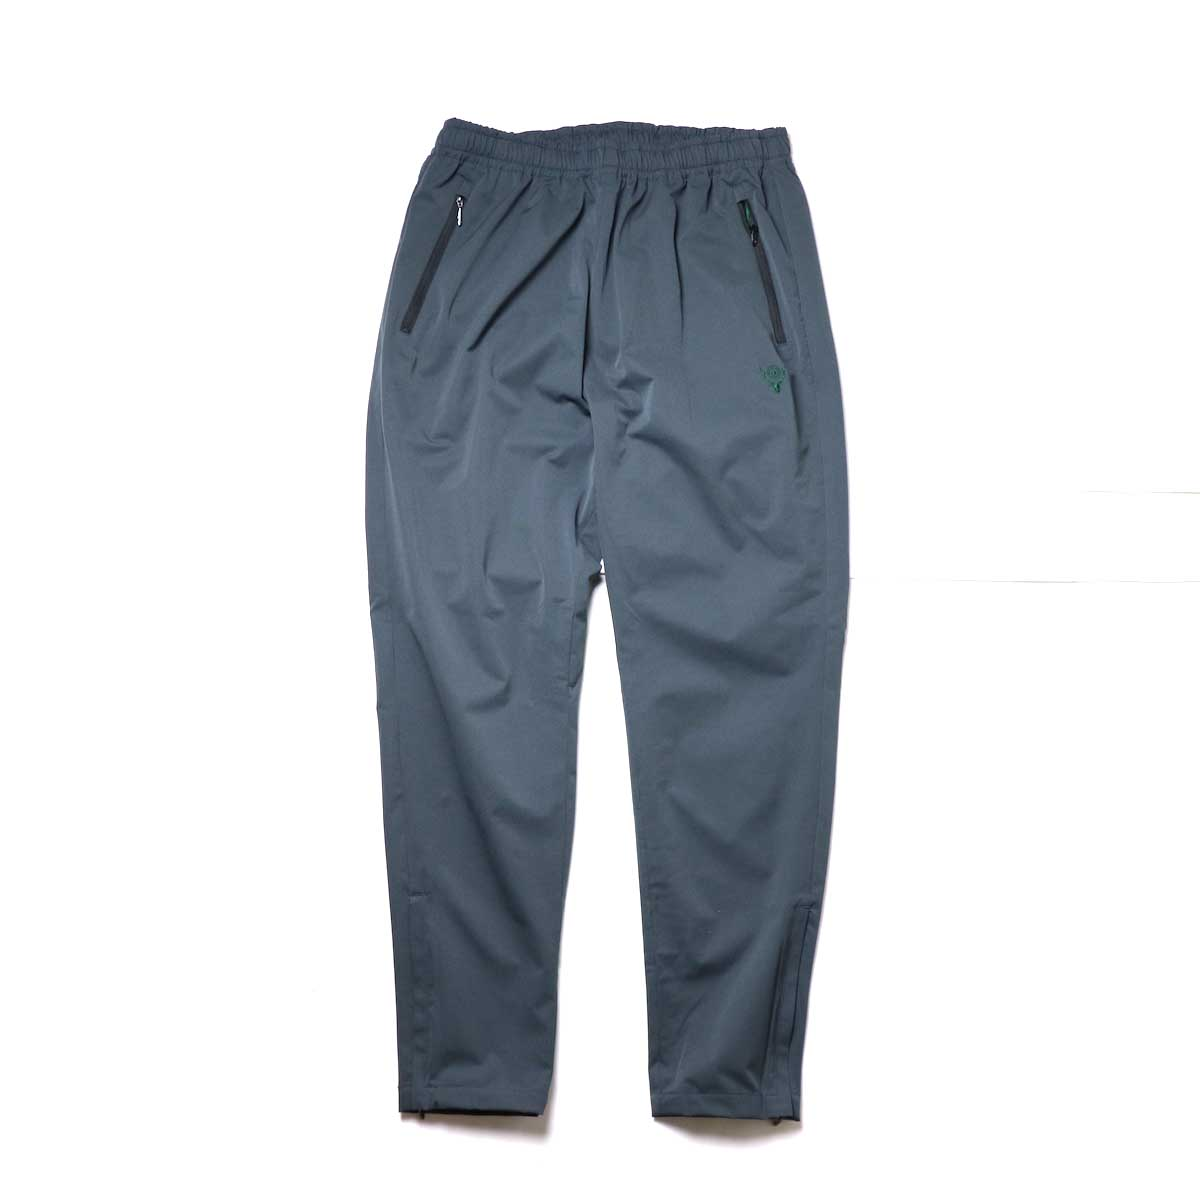 South2 West8 / Boulder Pant -Poly Stretch Twill (Charcoal)正面